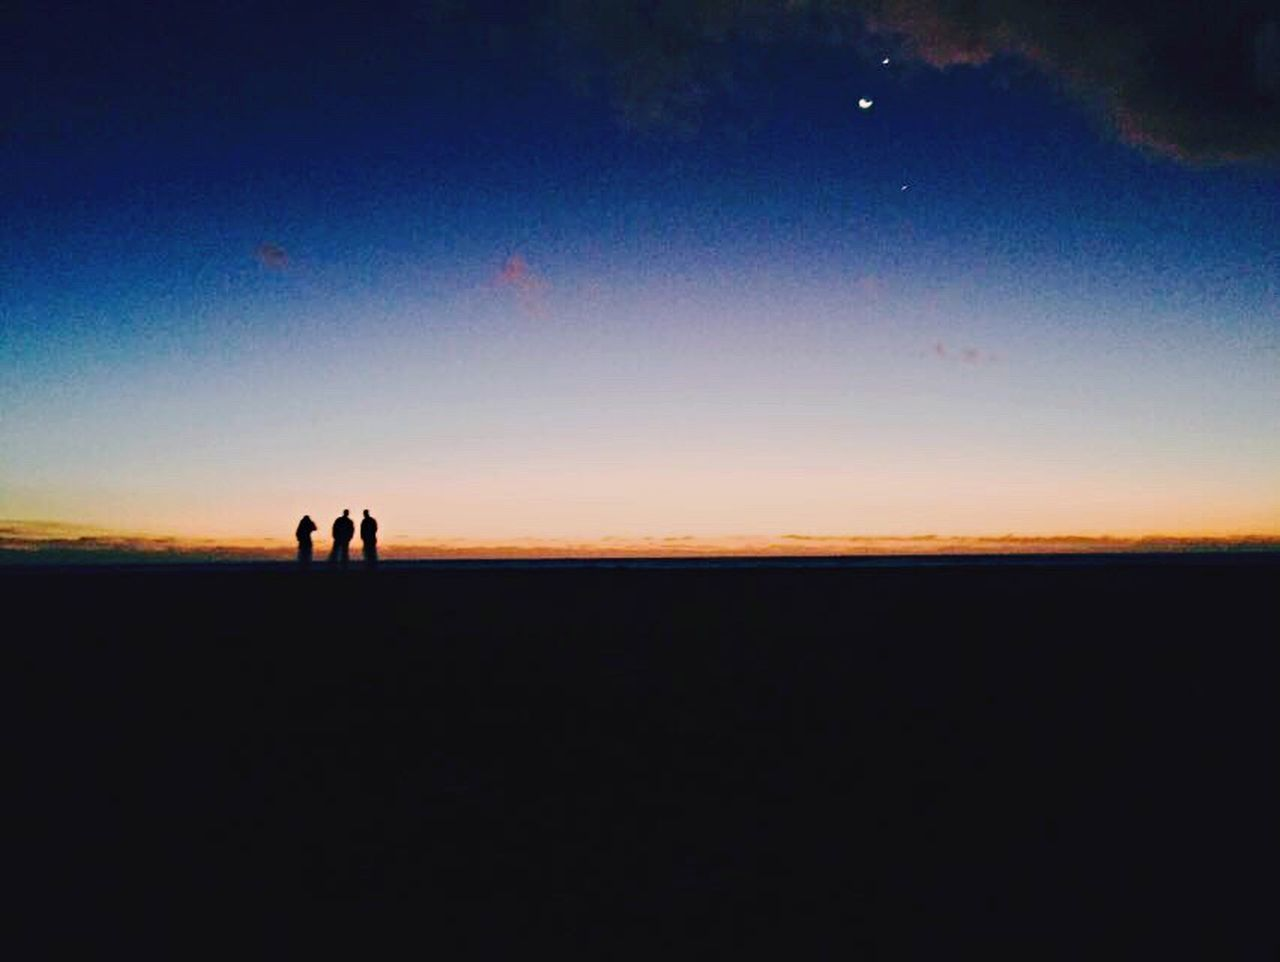 SILHOUETTE OF PEOPLE ON SEA AT SUNSET